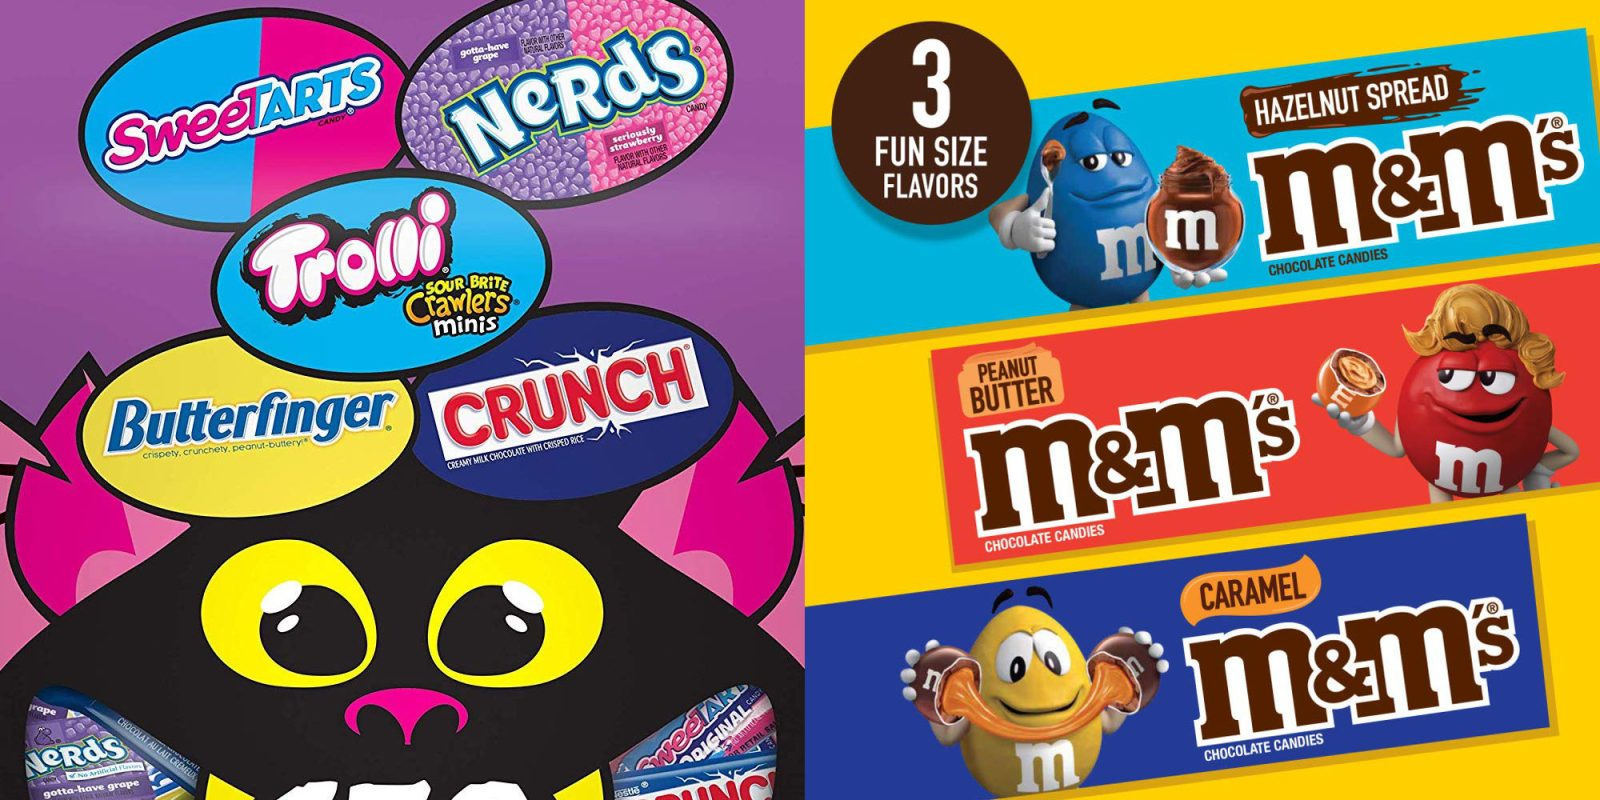 Score all your Halloween candy from $9.50 at Amazon: Nestle, Hershey's, more